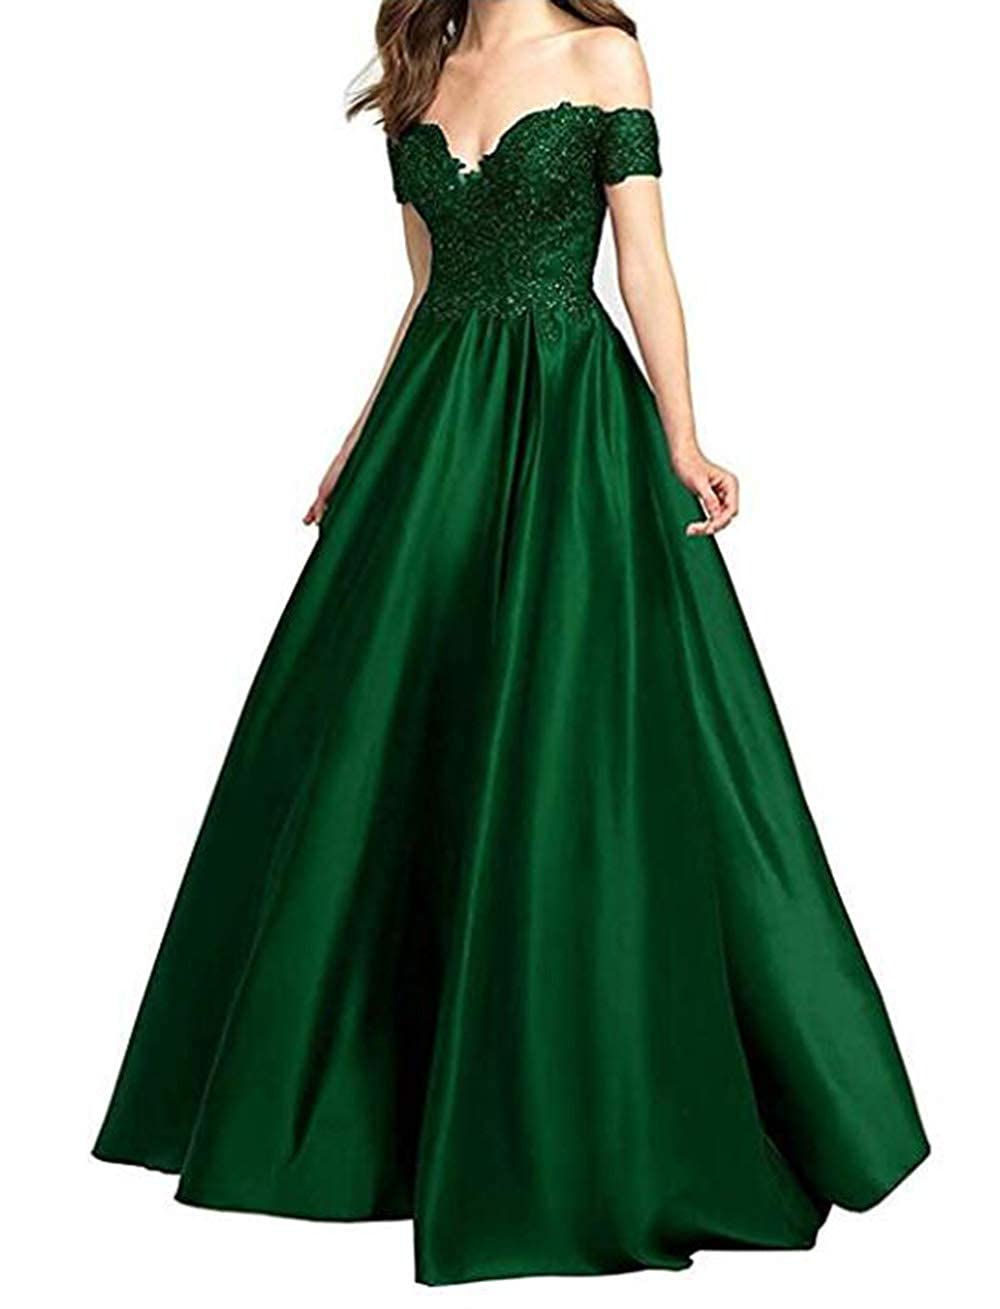 Emerald Green alilith.Z Sexy Off The Shoulder Prom Dresses Long Beaded Lace Satin Evening Dresses Party Gowns for Women 2019